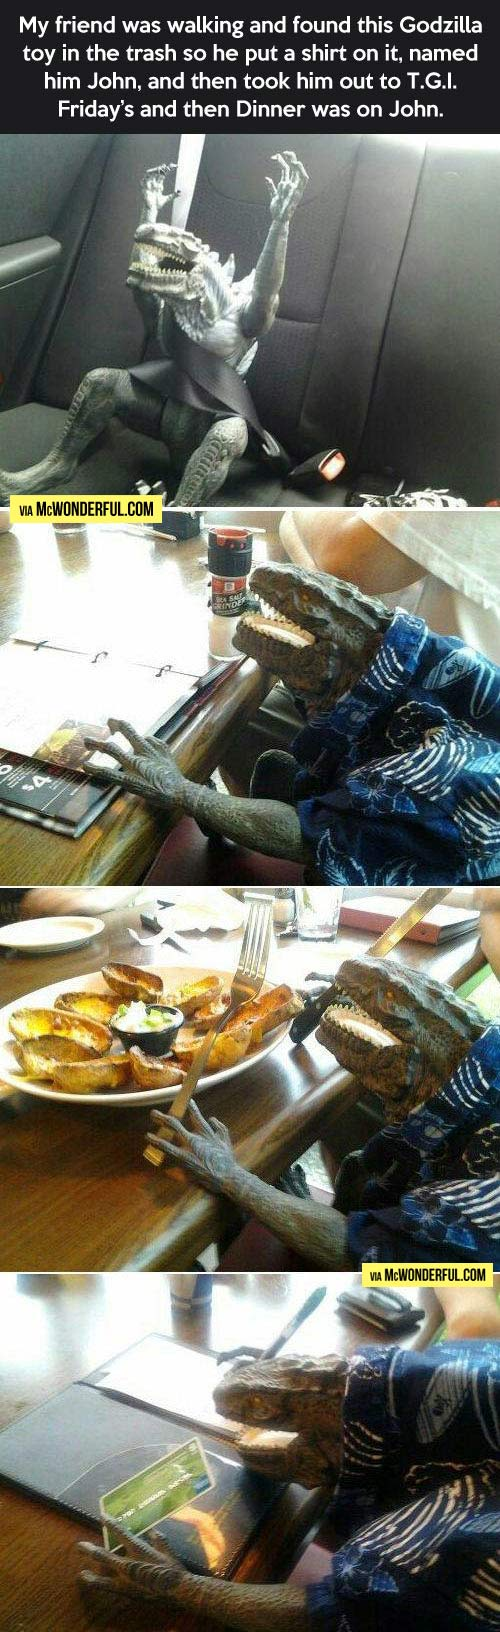 funny-Godzilla-lunch-car